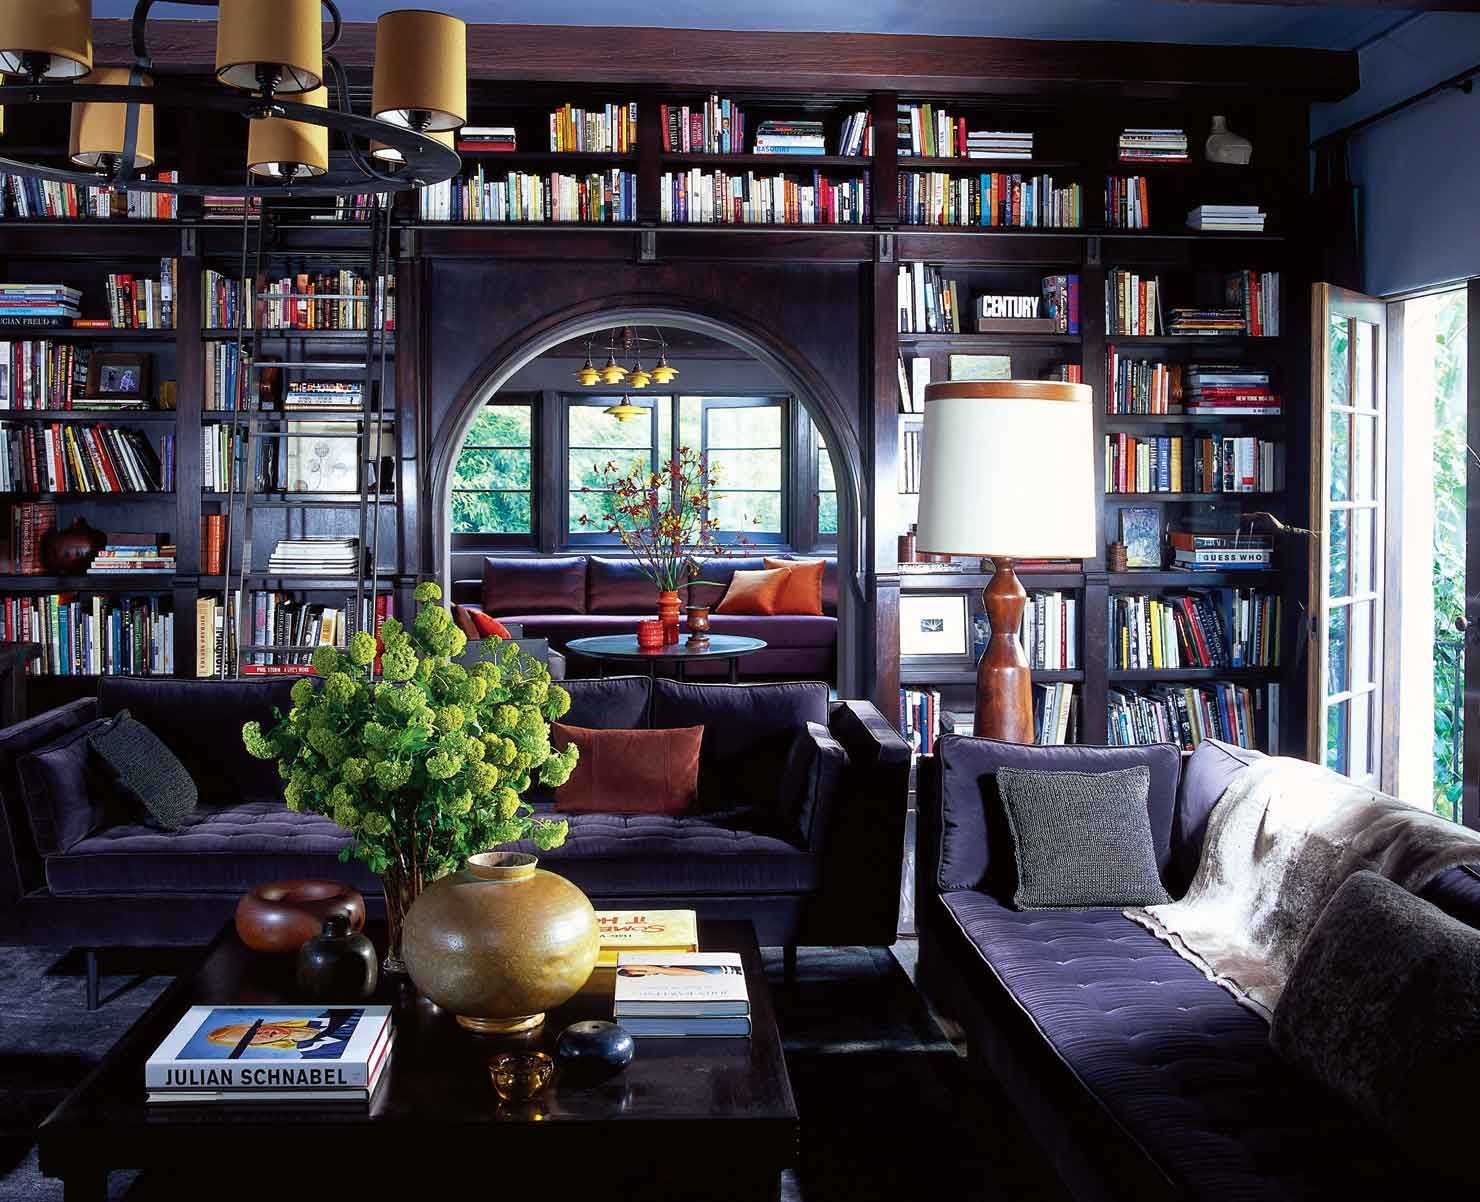 Specksofglitterandgold: Incredible Dark Interior Color Decoration Custom Home  Libraries With Small Living Space Used Traditional Furniture Design On We  ...